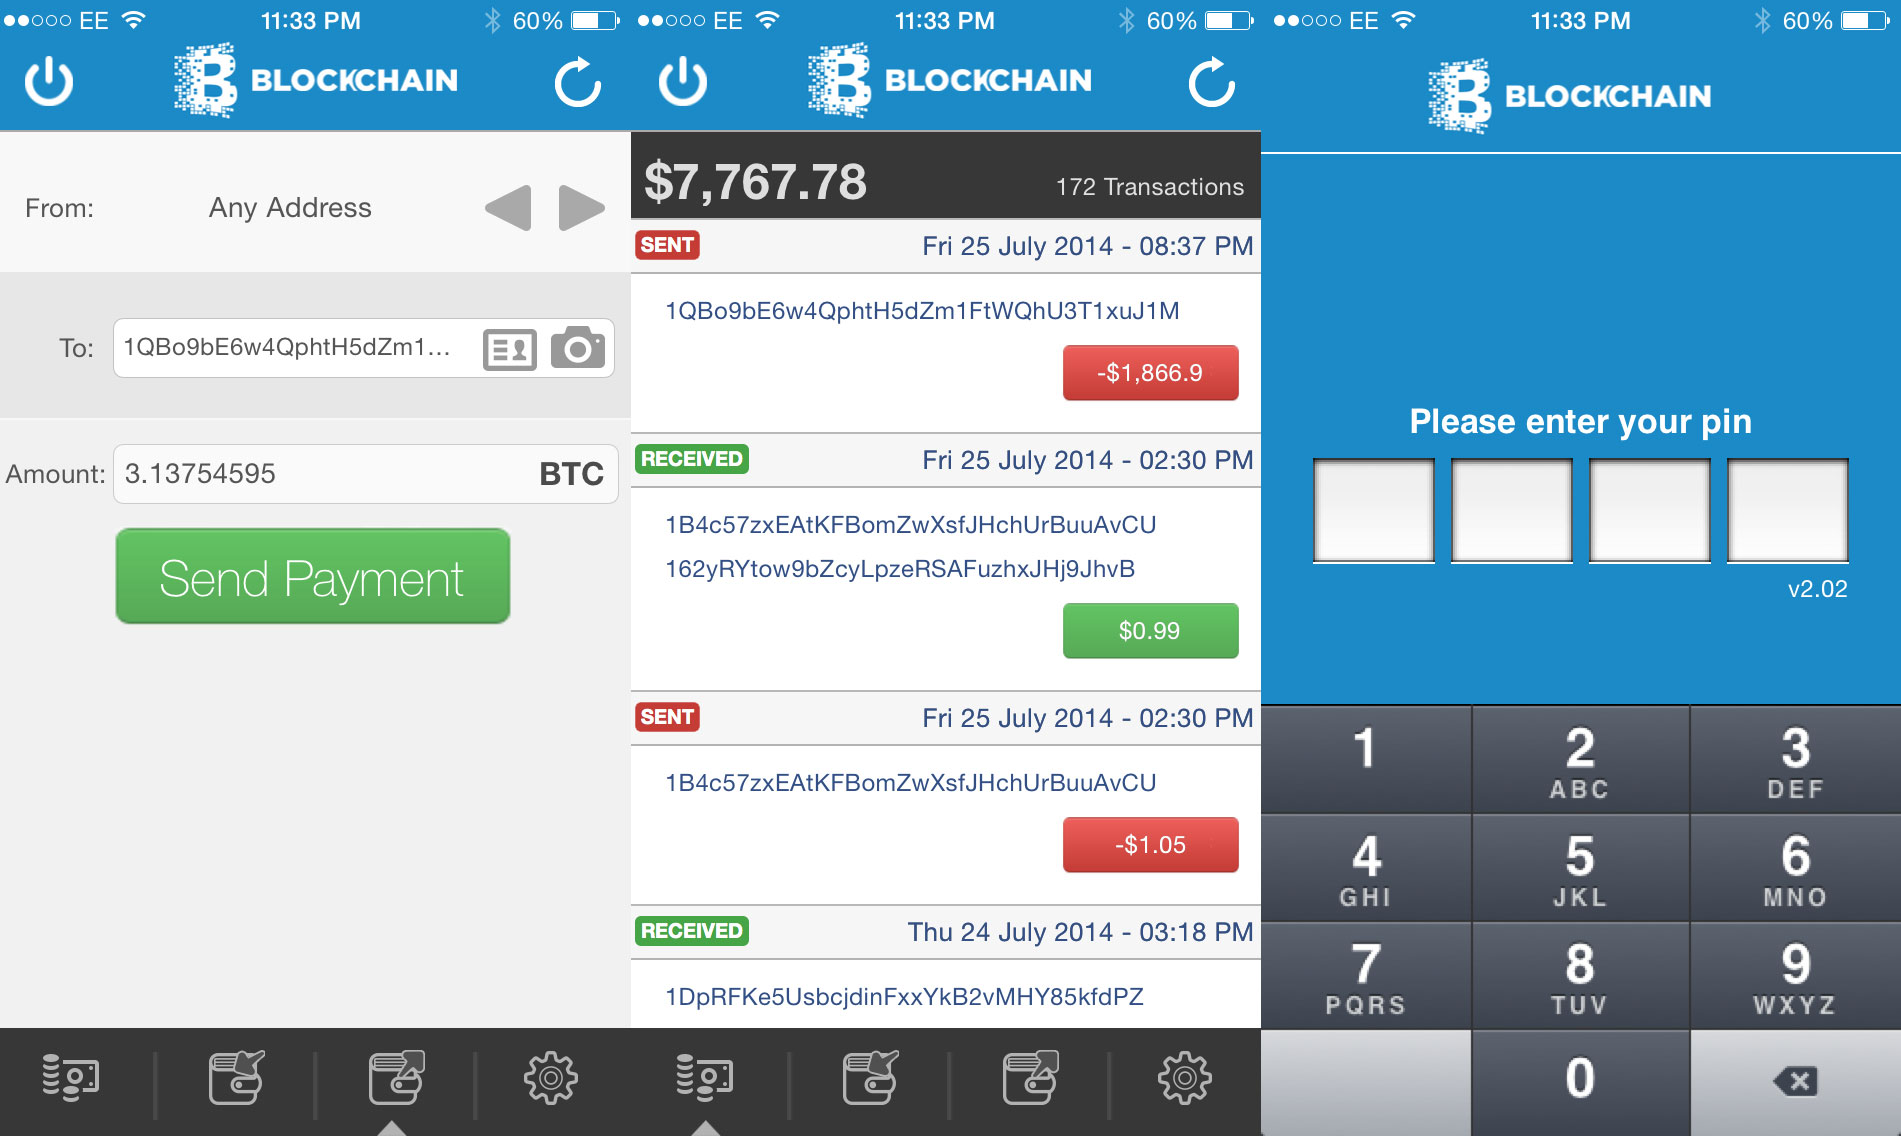 blockchain-wallet-screenshots